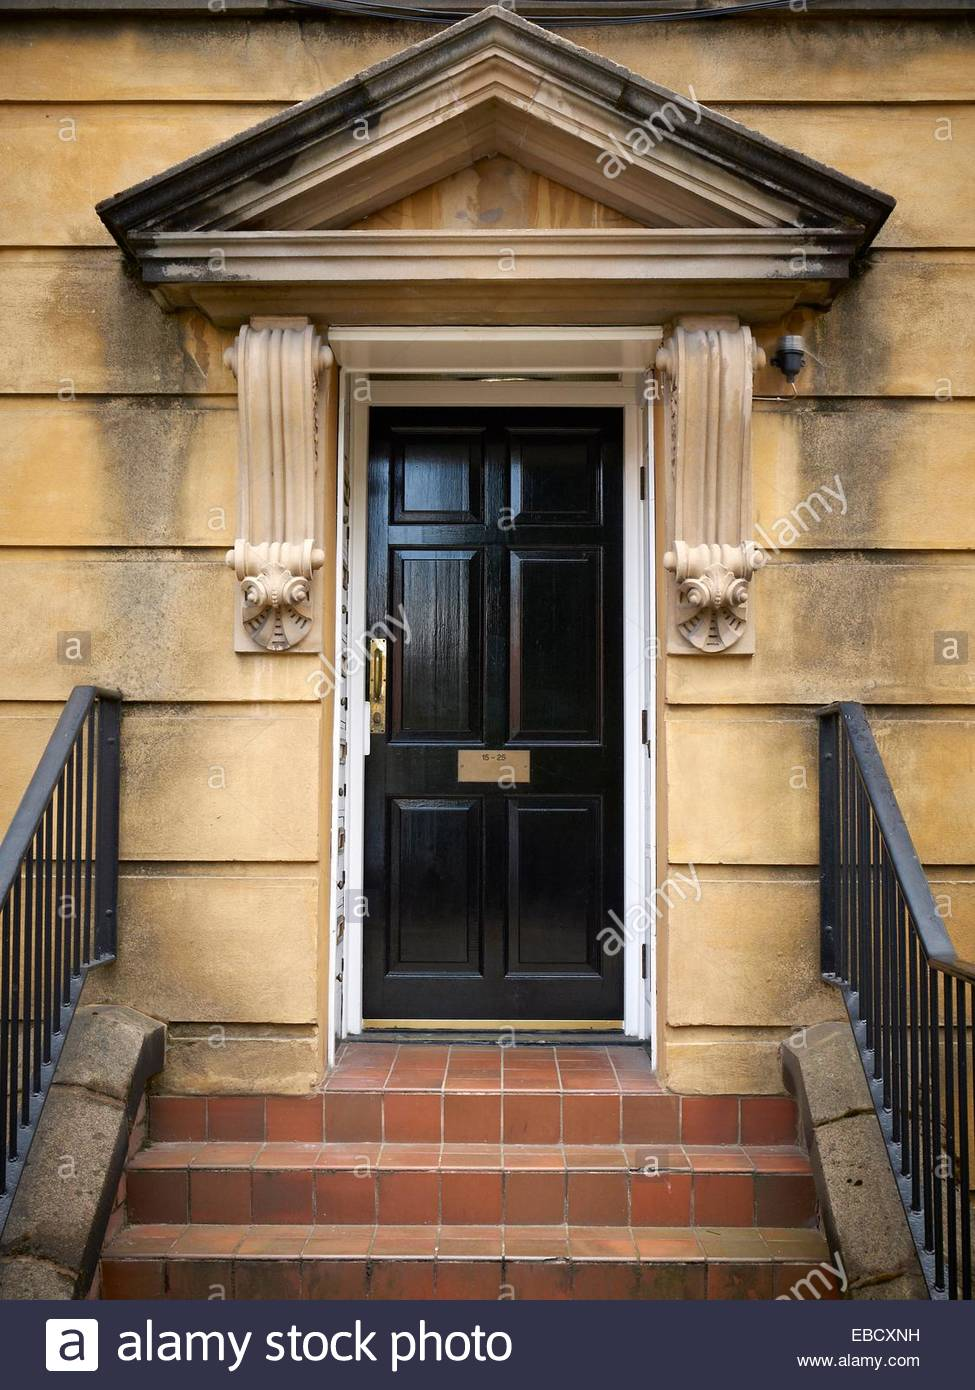 Black Front Door Or Ornate Victorian Entrance With Steps In Stock